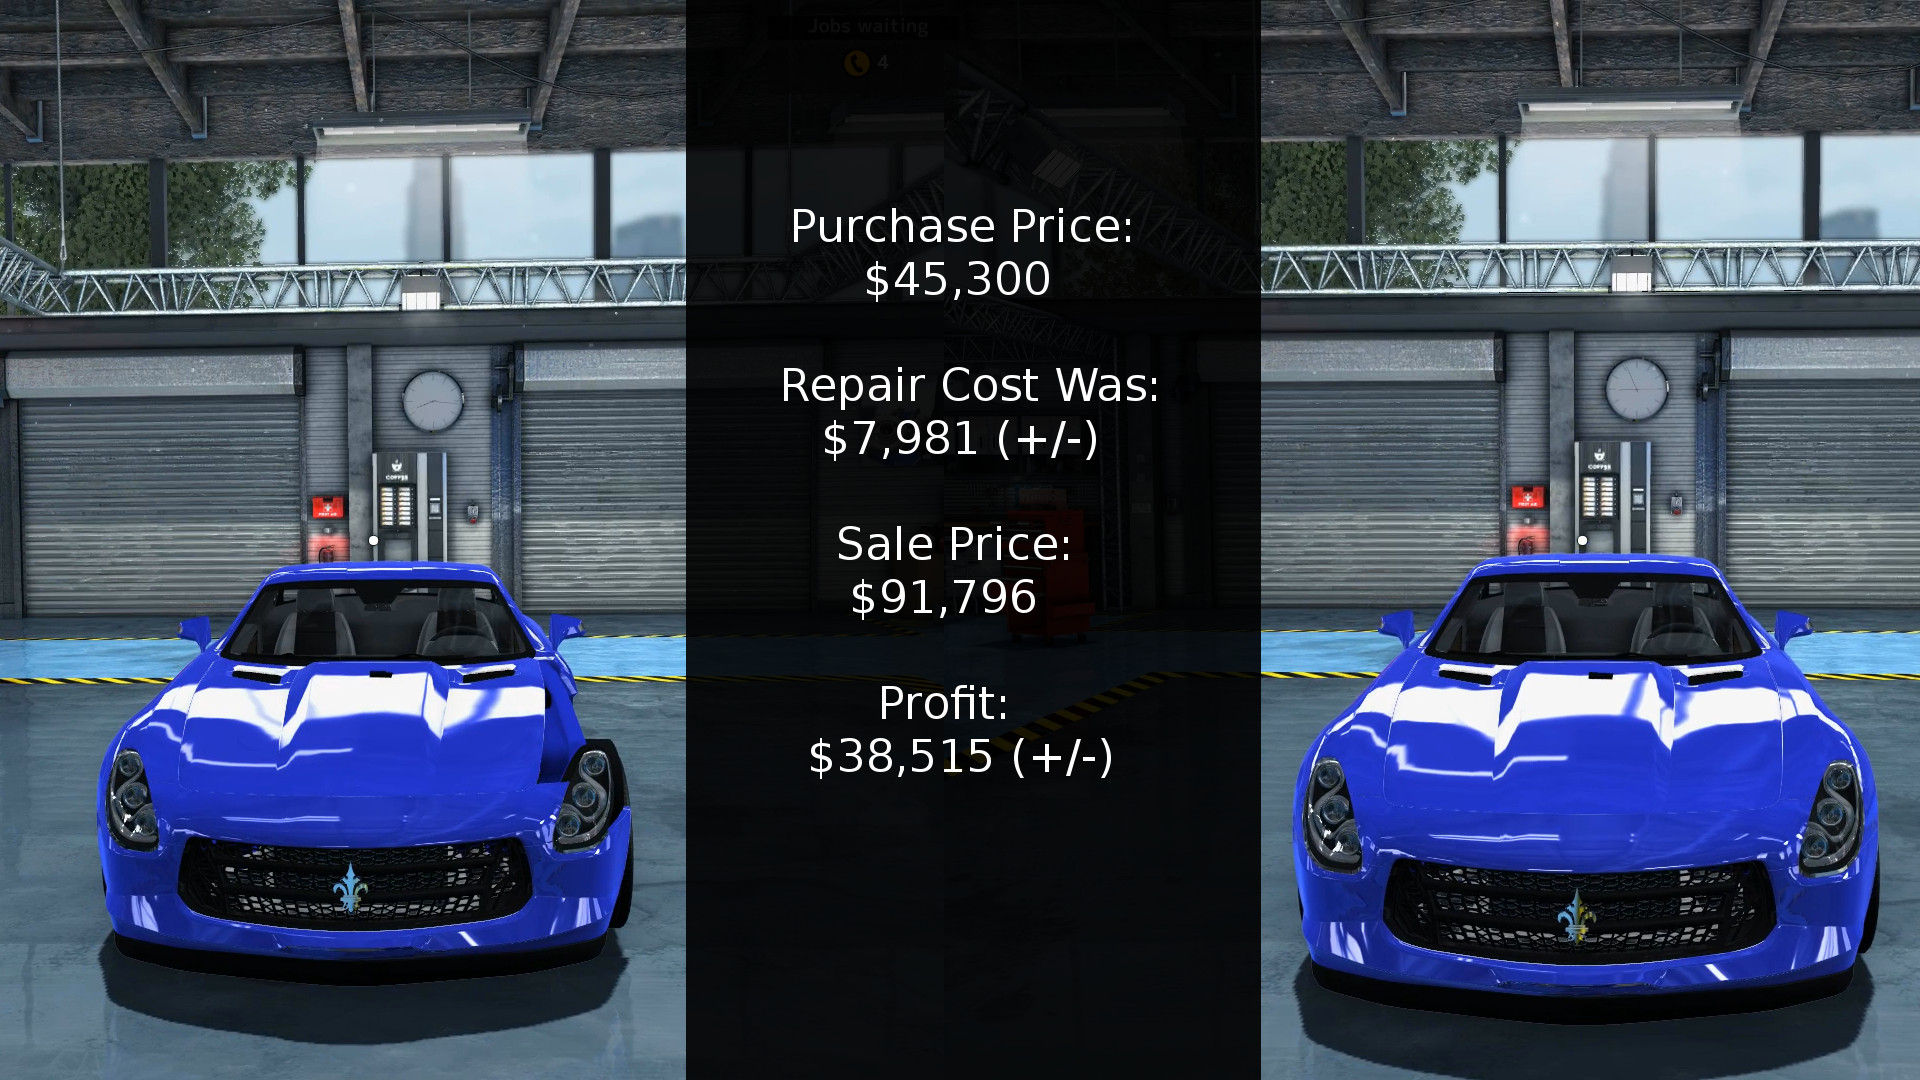 Breakdown of the cost vs profit for rebuilding the Royale GTR in Car Mechanic Simulator 2015.